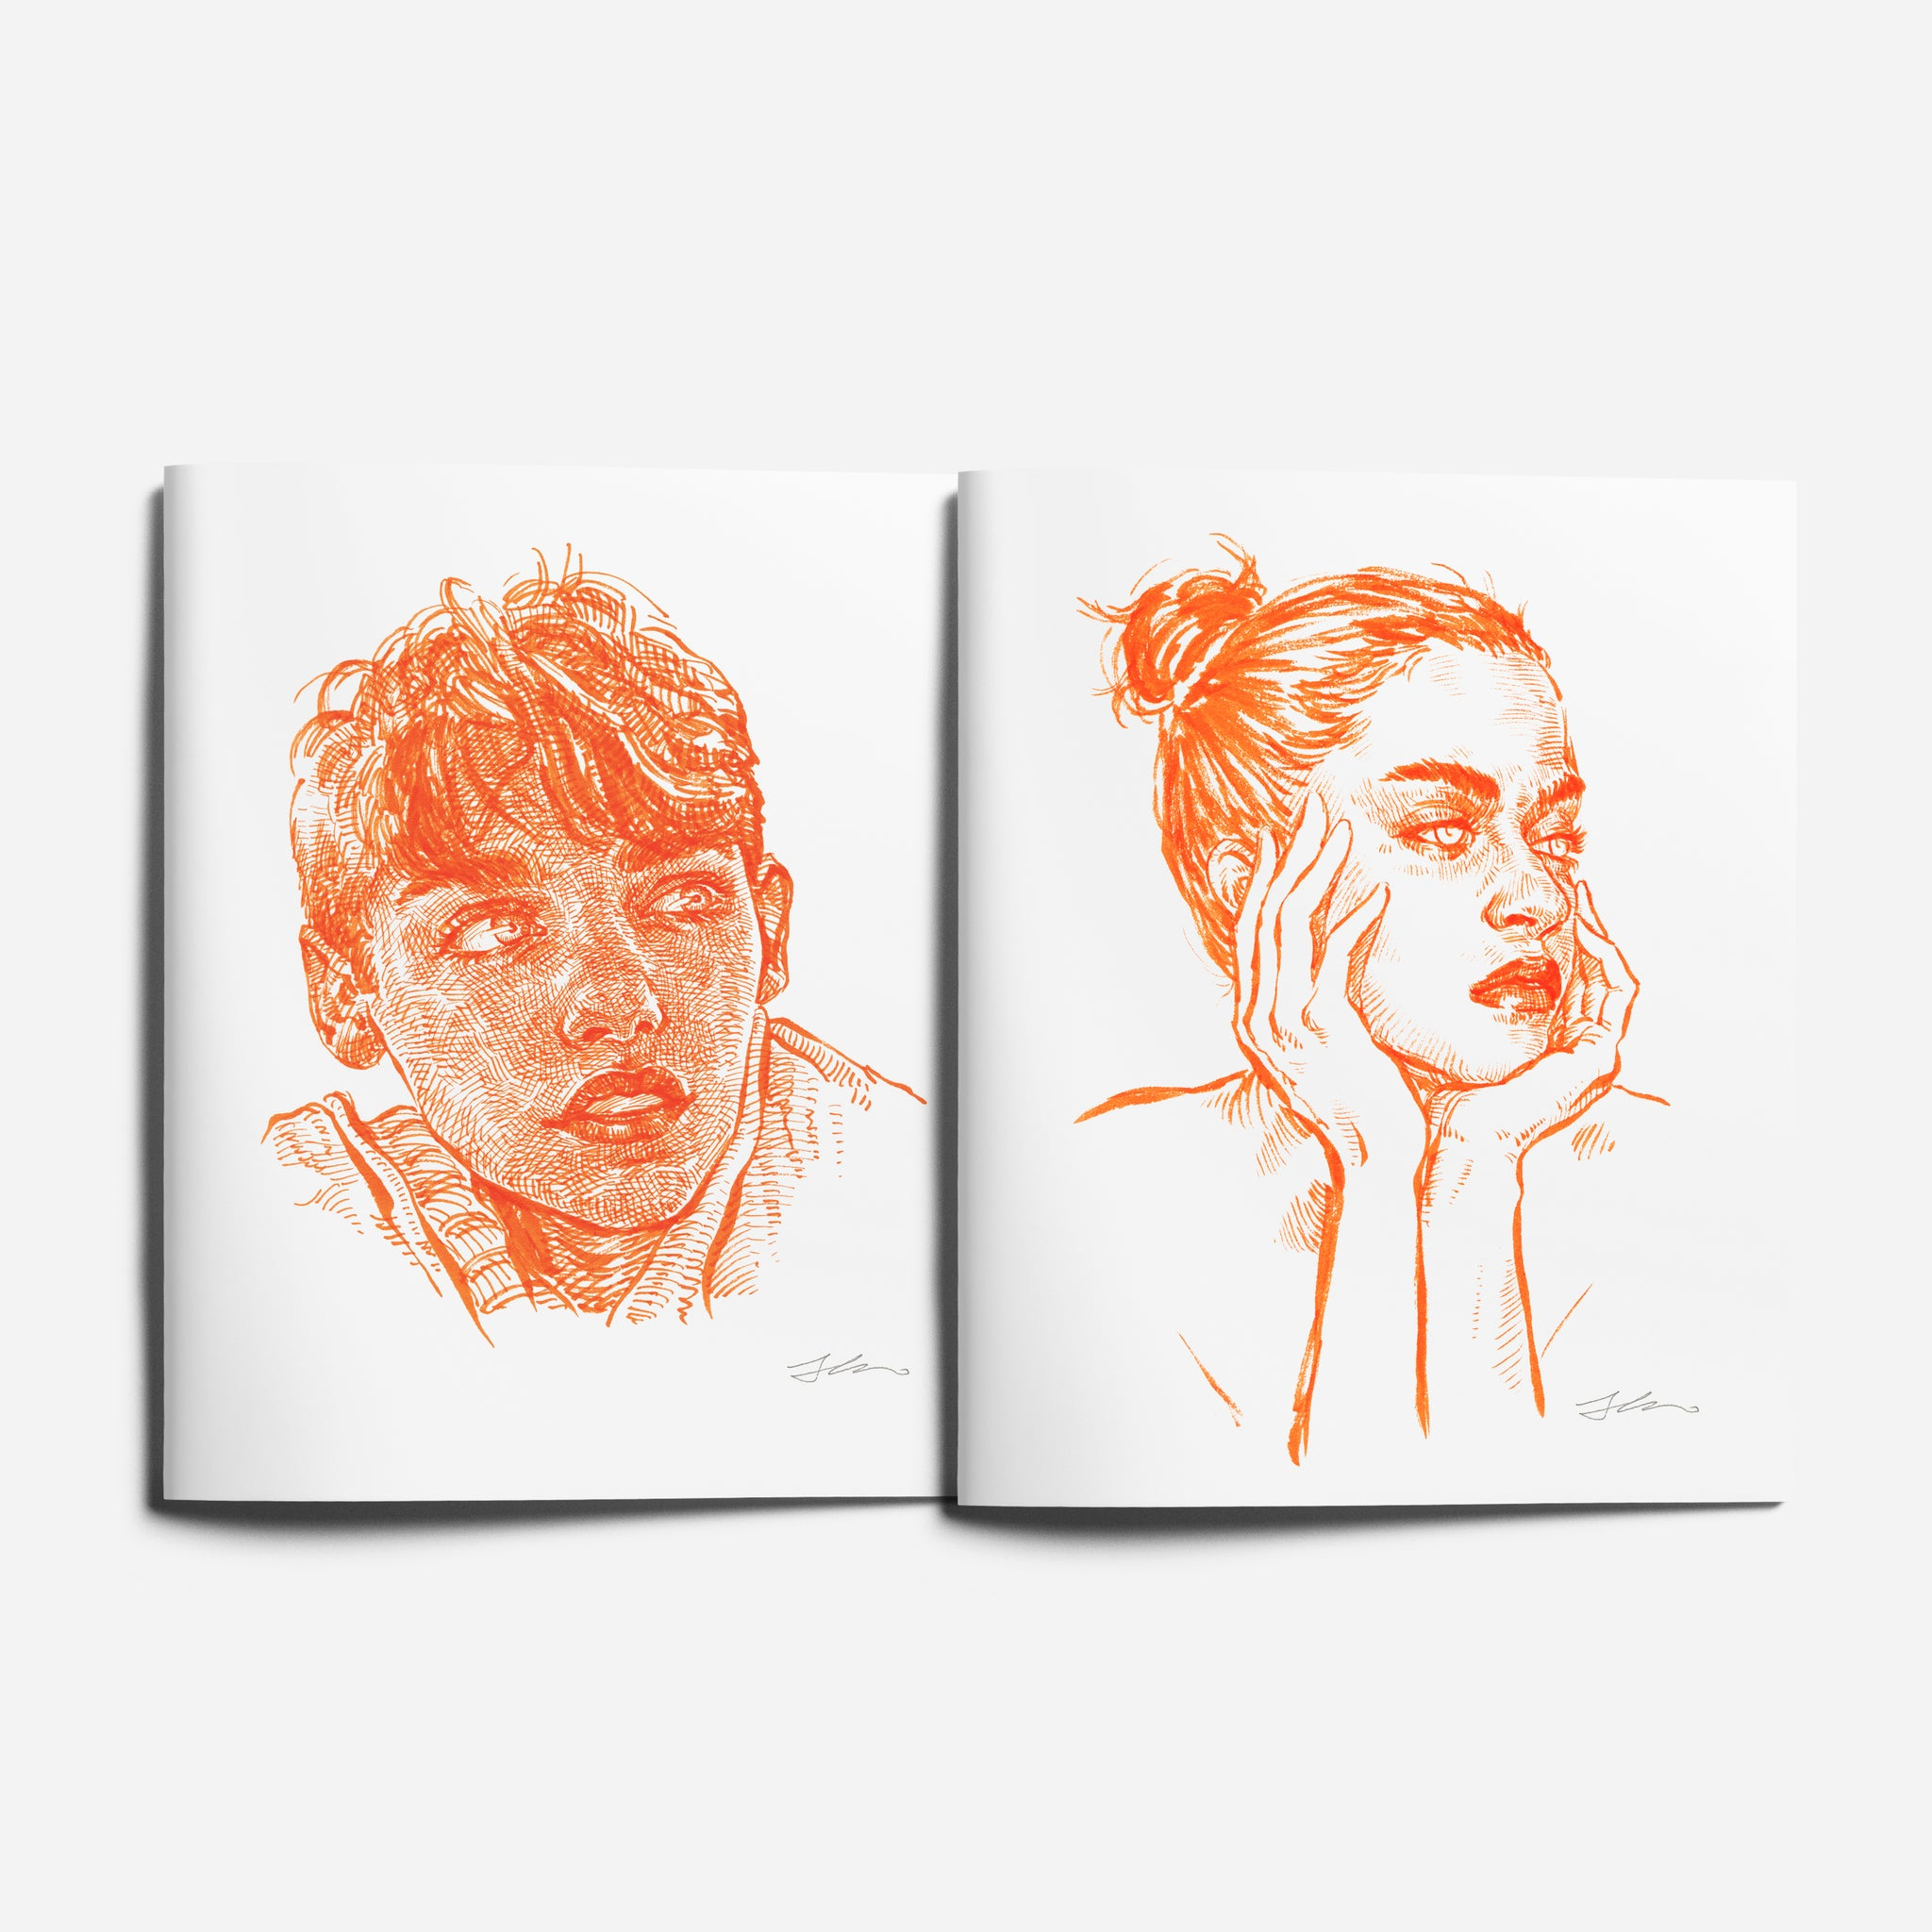 Tangerine Journal/Notebook - 2 books🍊